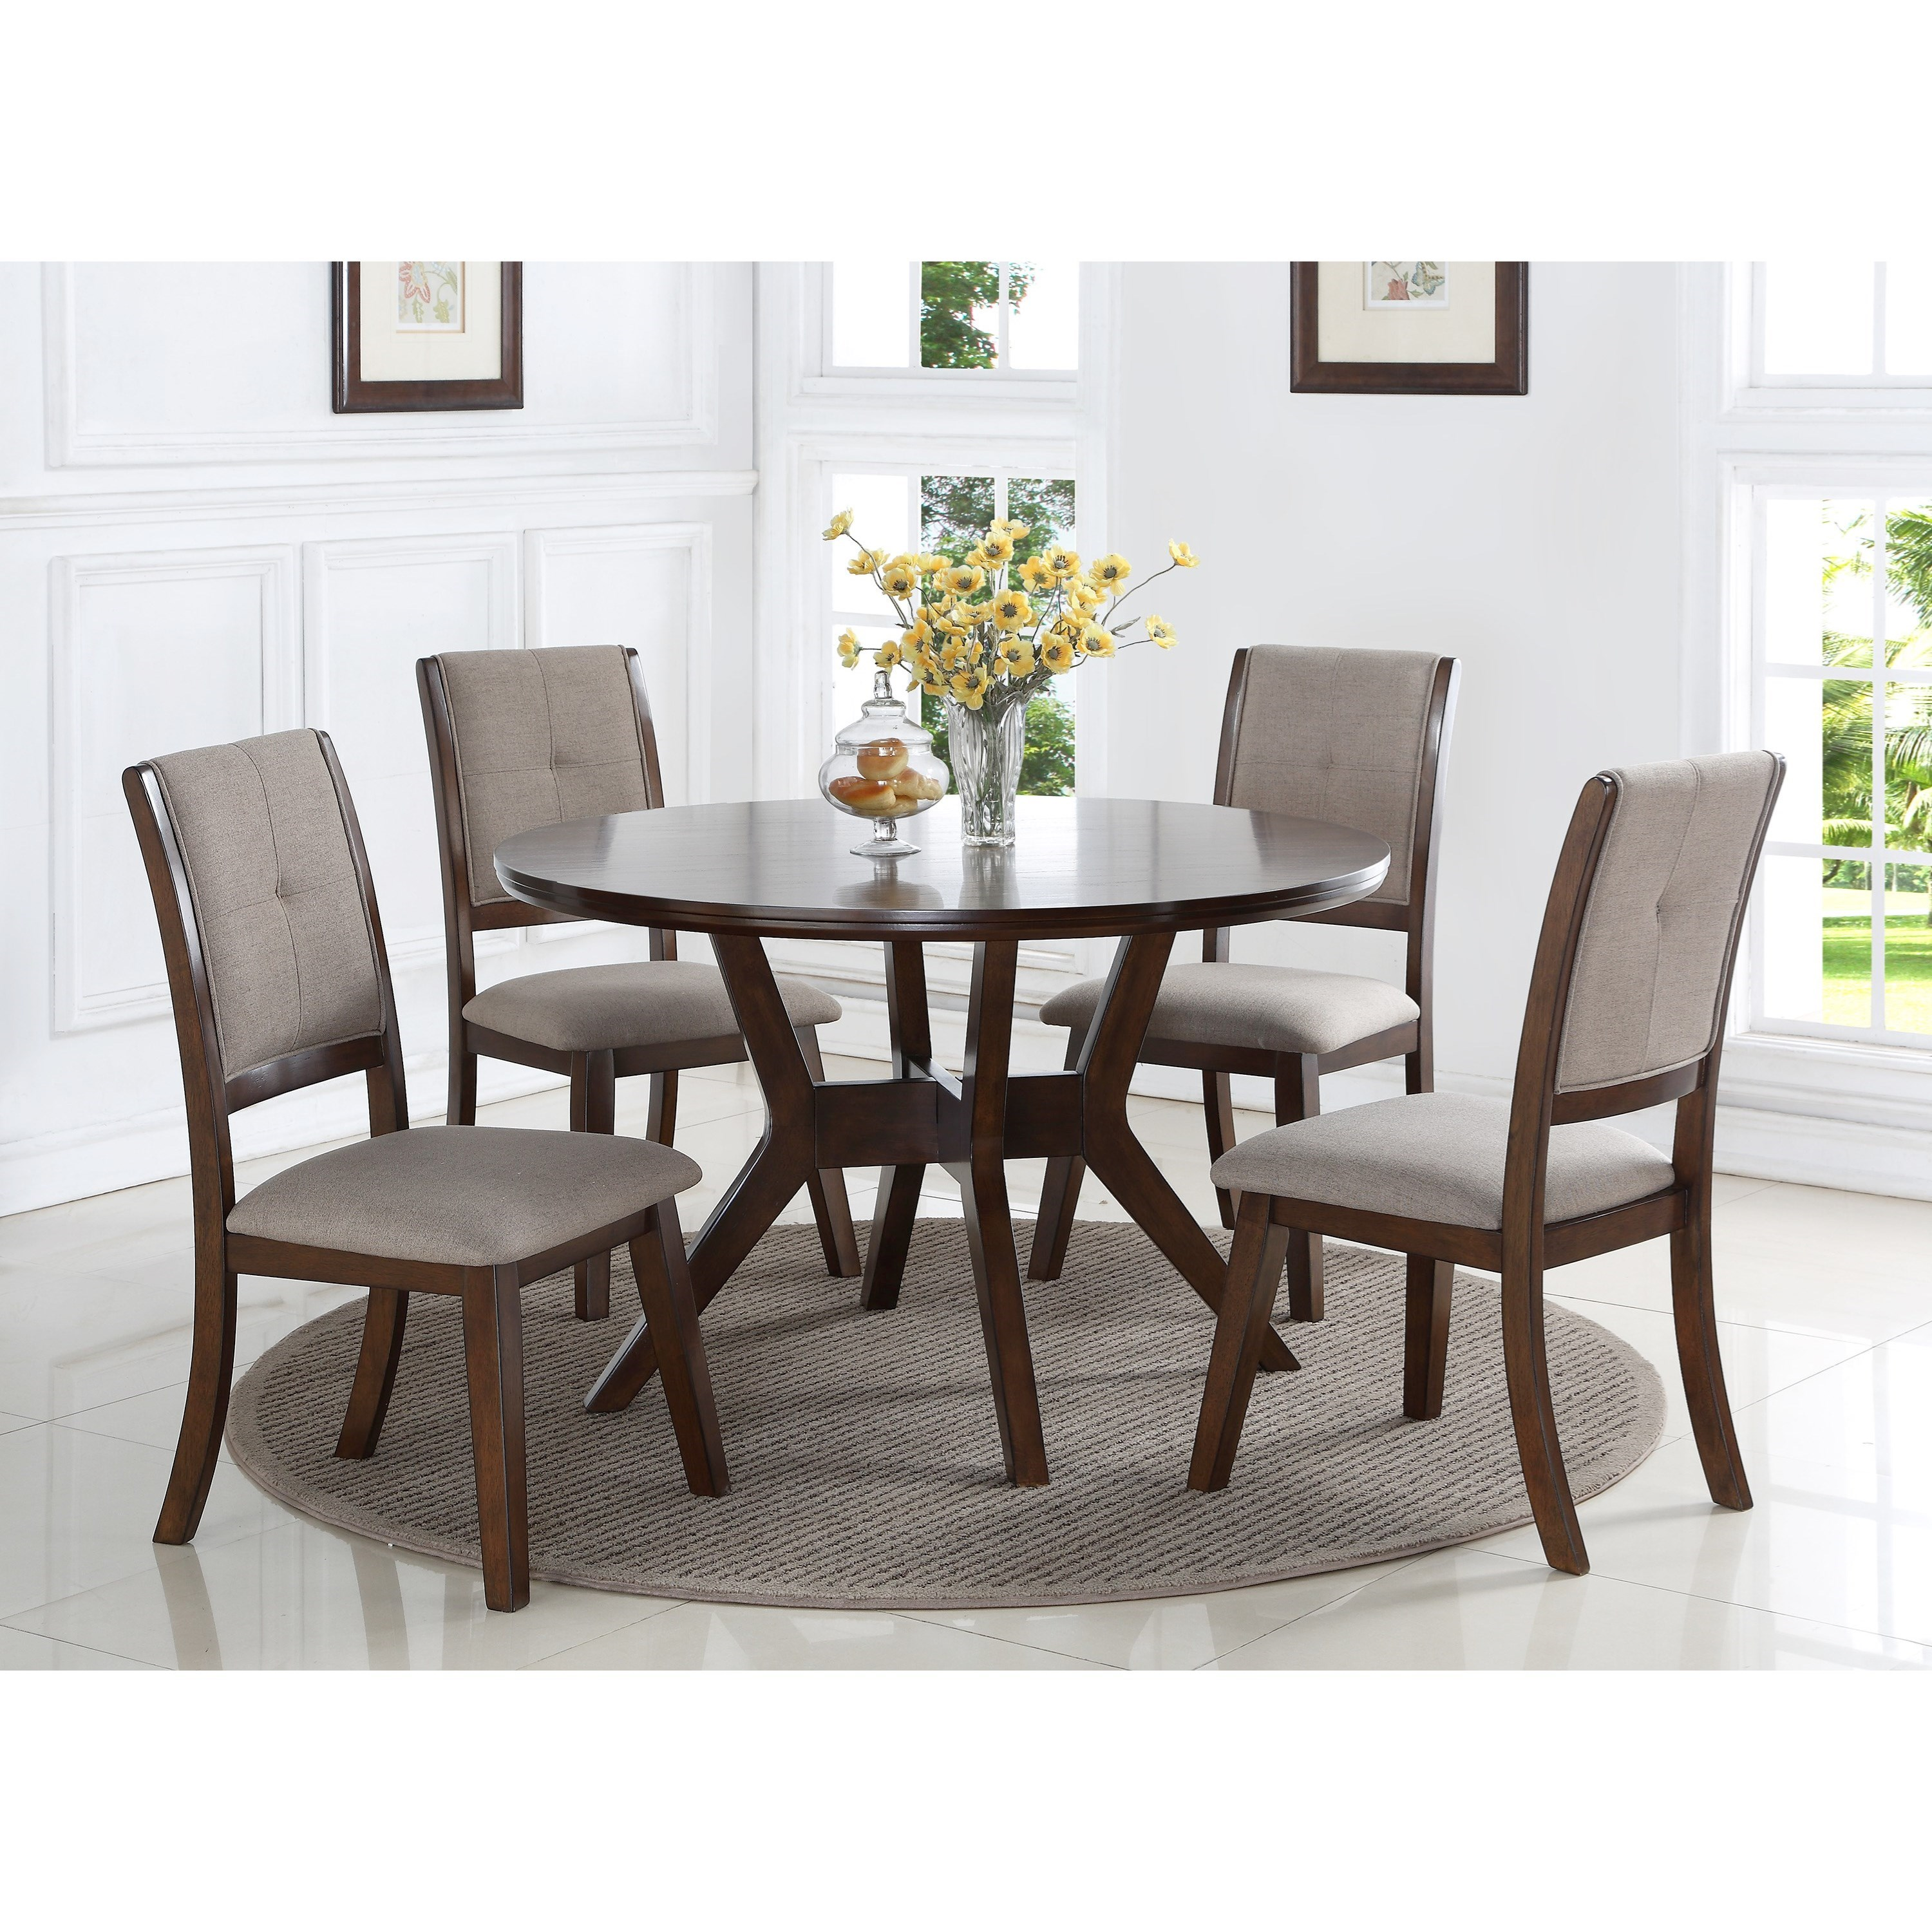 Barney Table and Chair Set by Crown Mark at Northeast Factory Direct